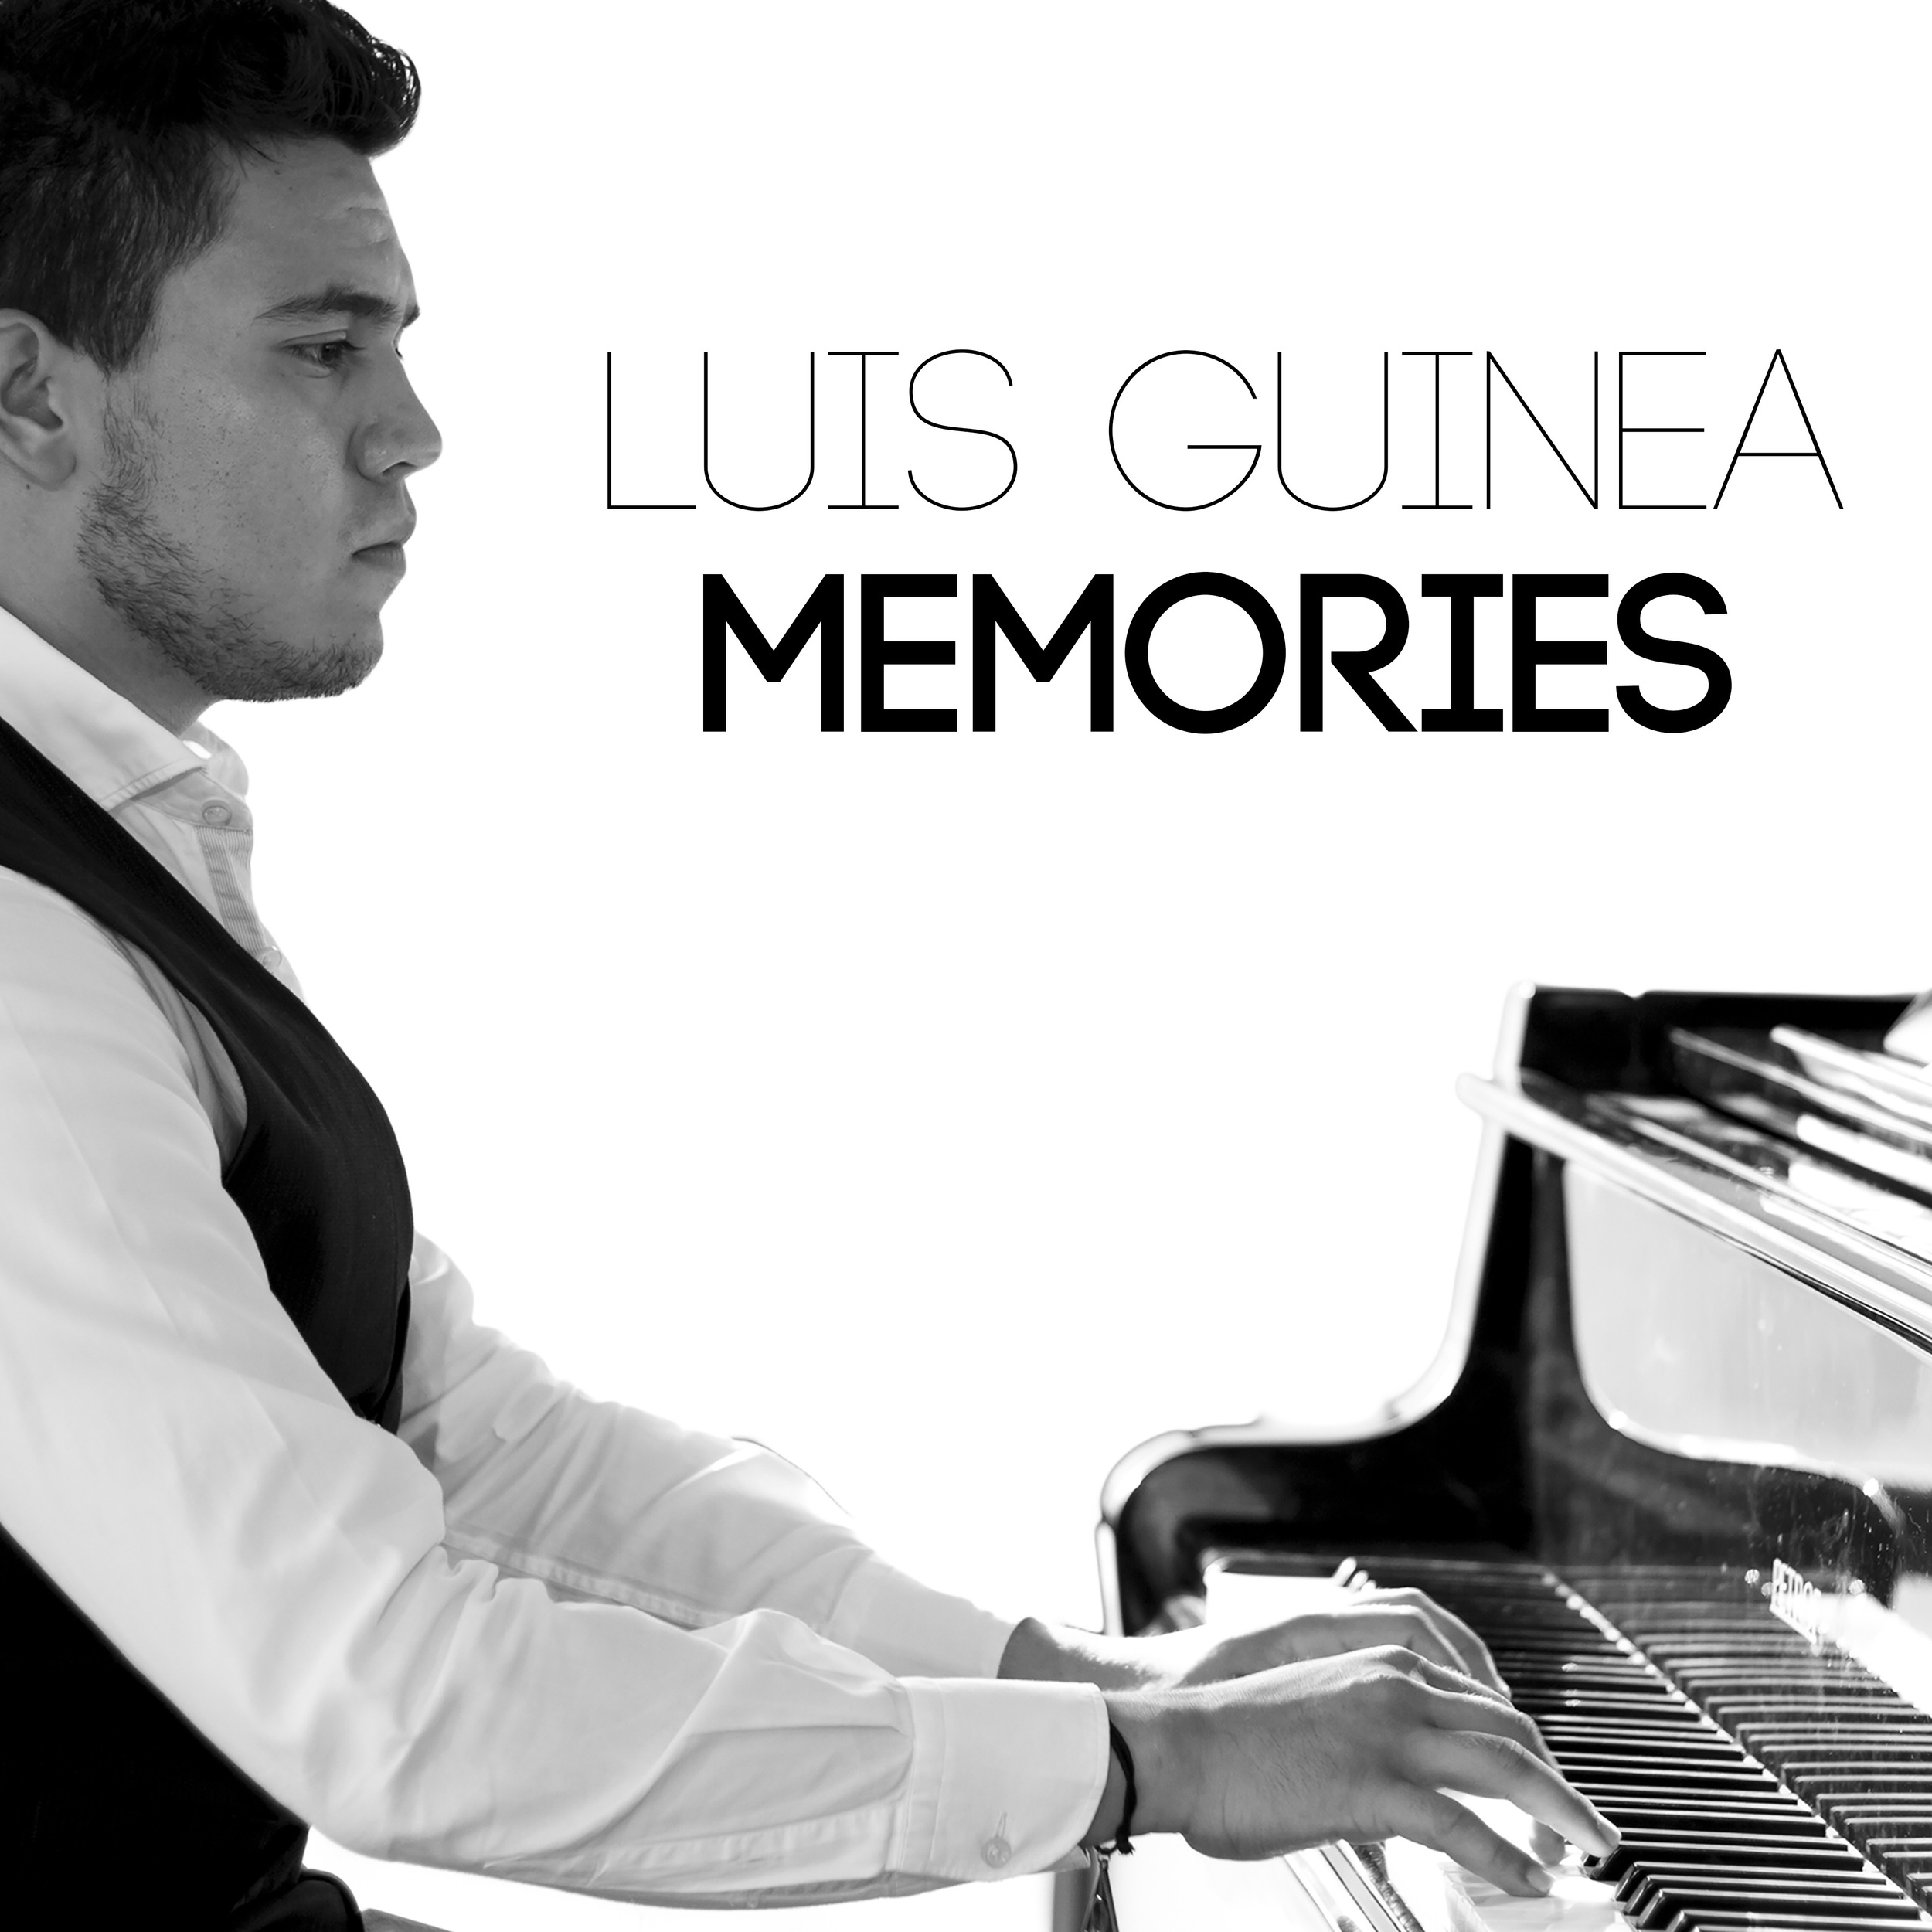 Luis Guinea - Memories (Album Cover).jpg